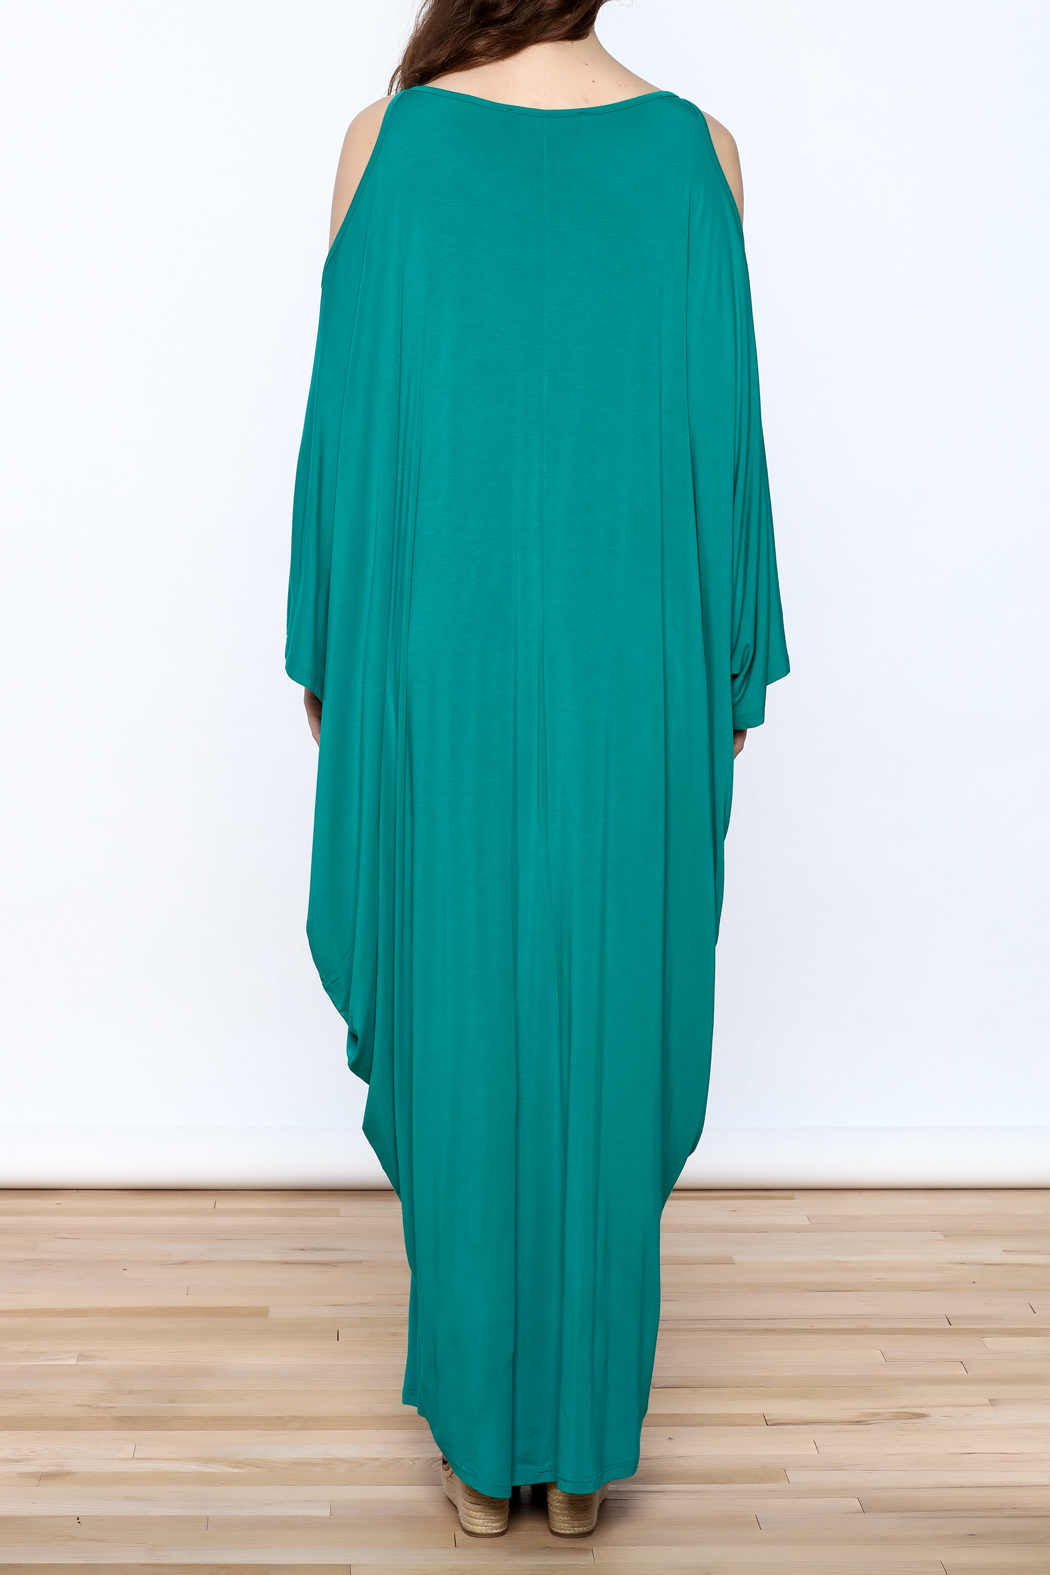 Join Clothes Teal Goddess Maxi Dress - Back Cropped Image